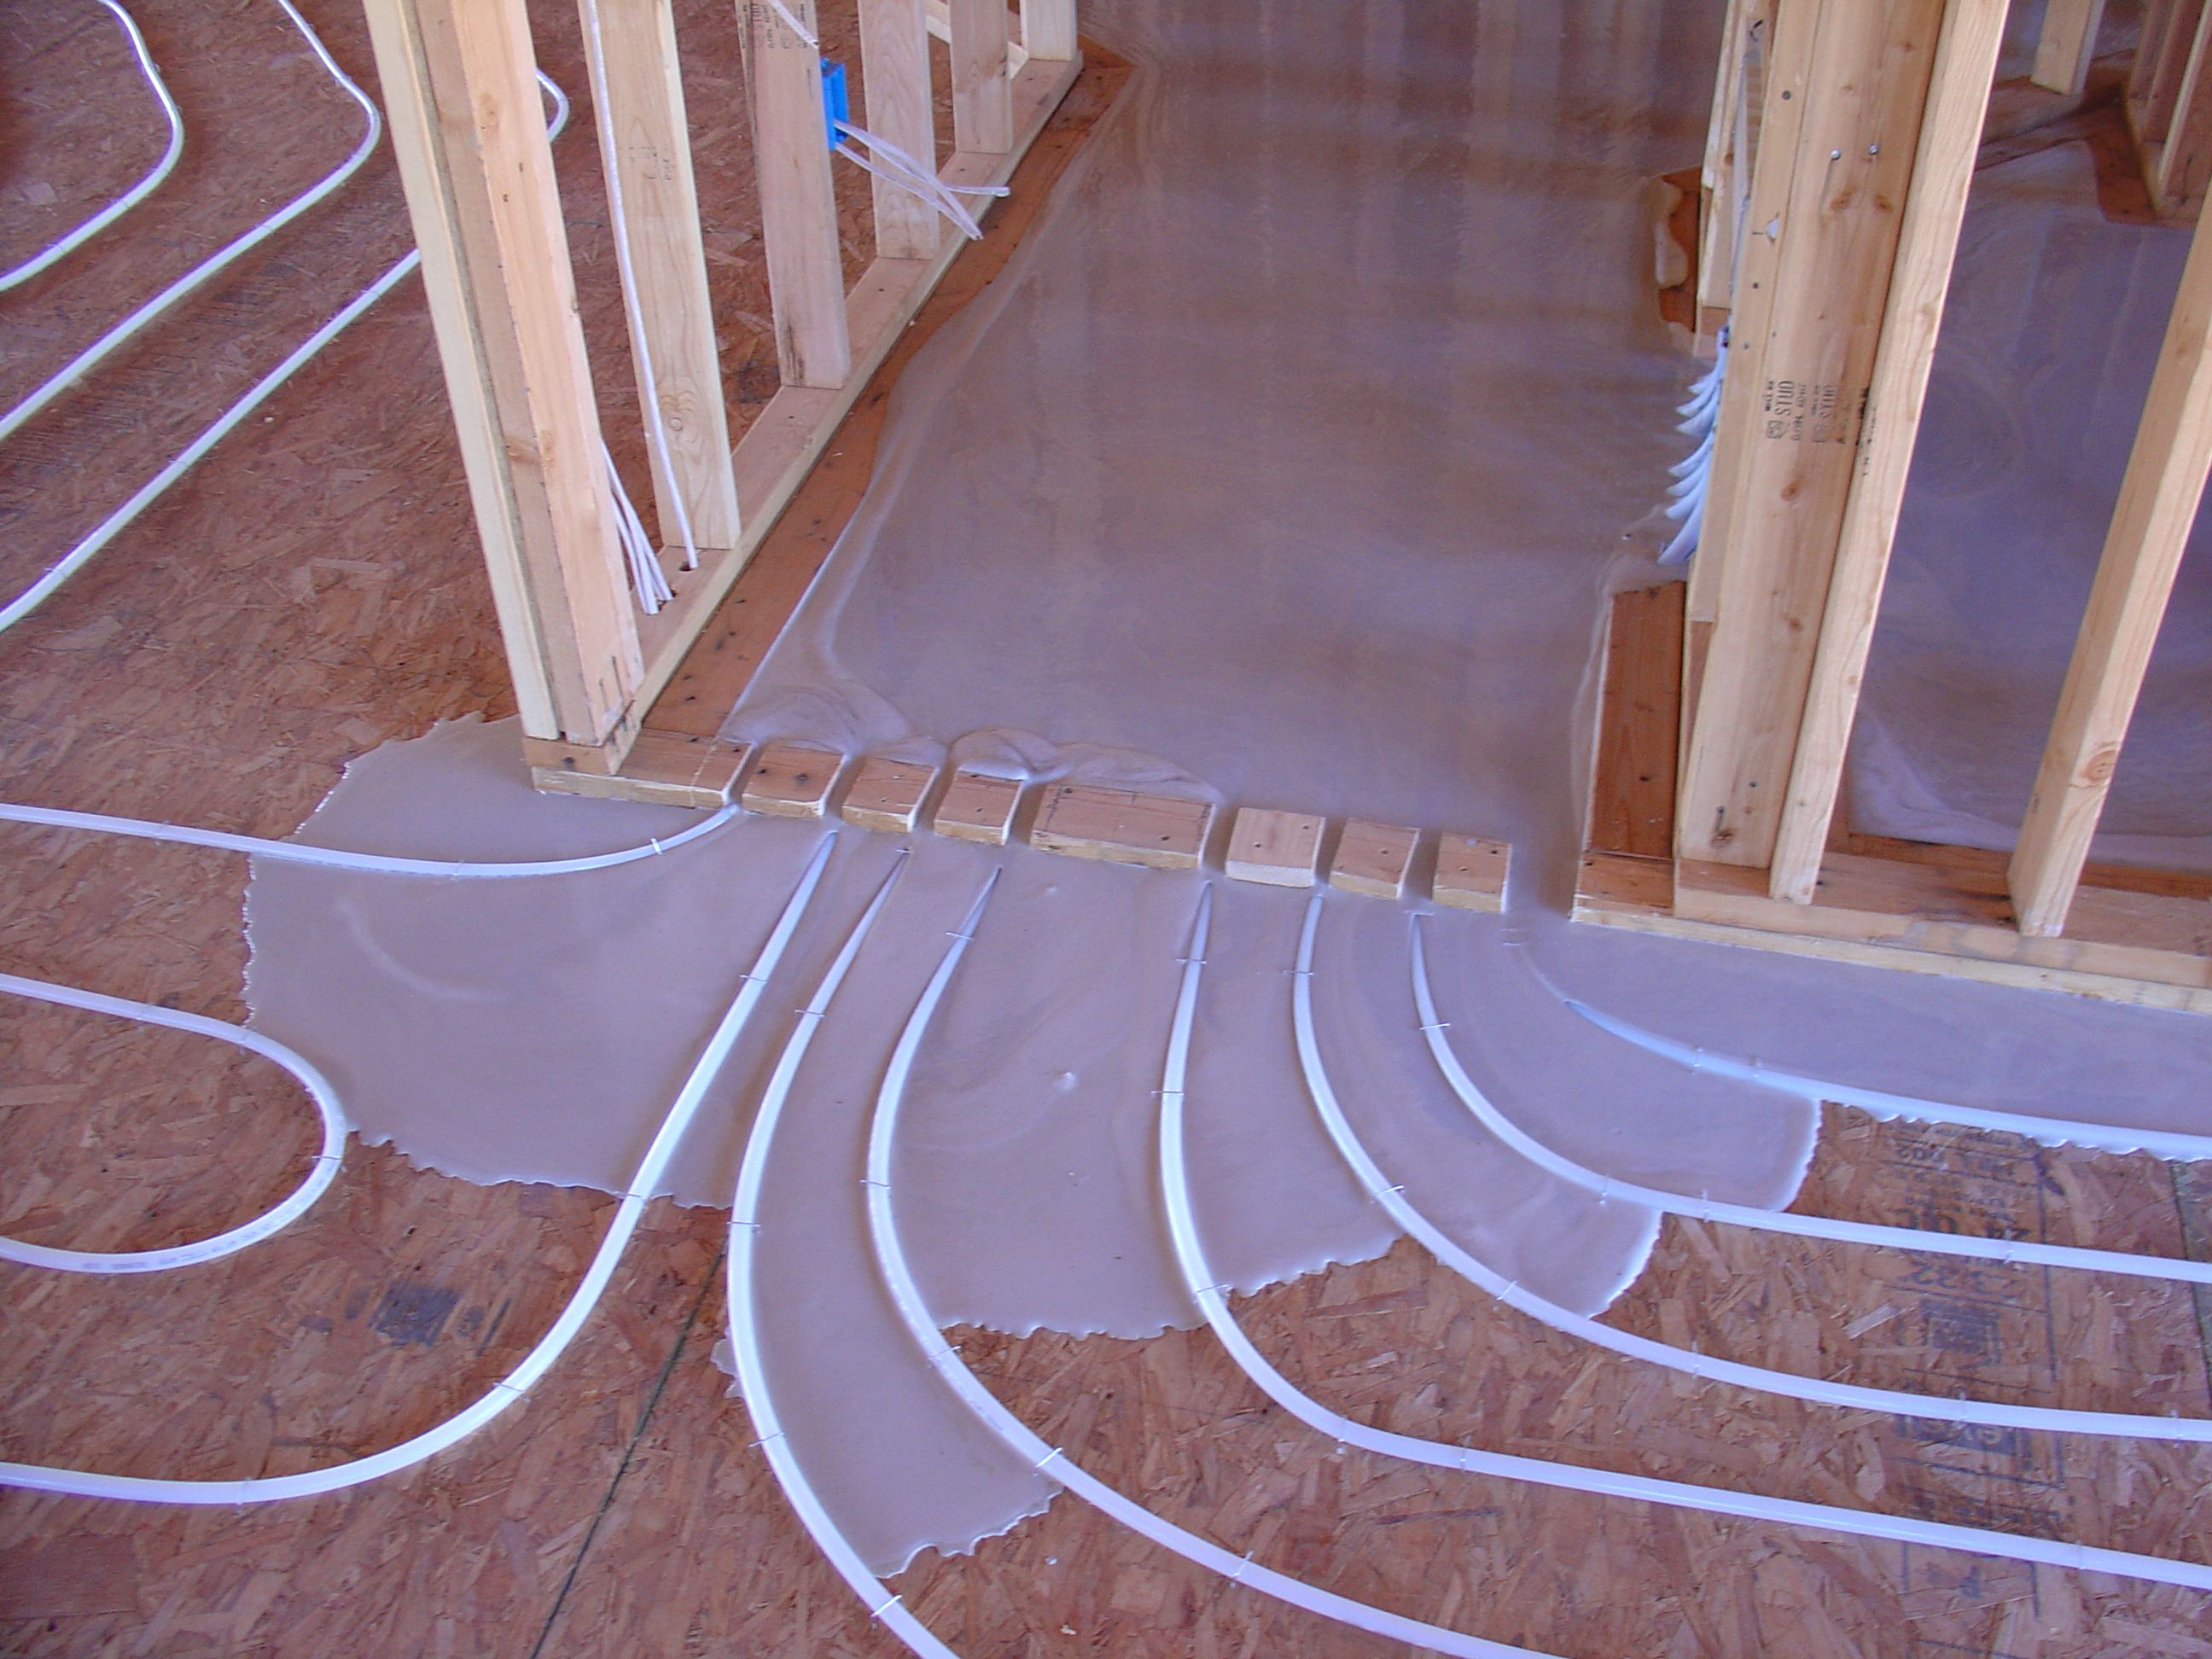 Gyp crete pour over radiant tubing solar thermal for Radiant floors